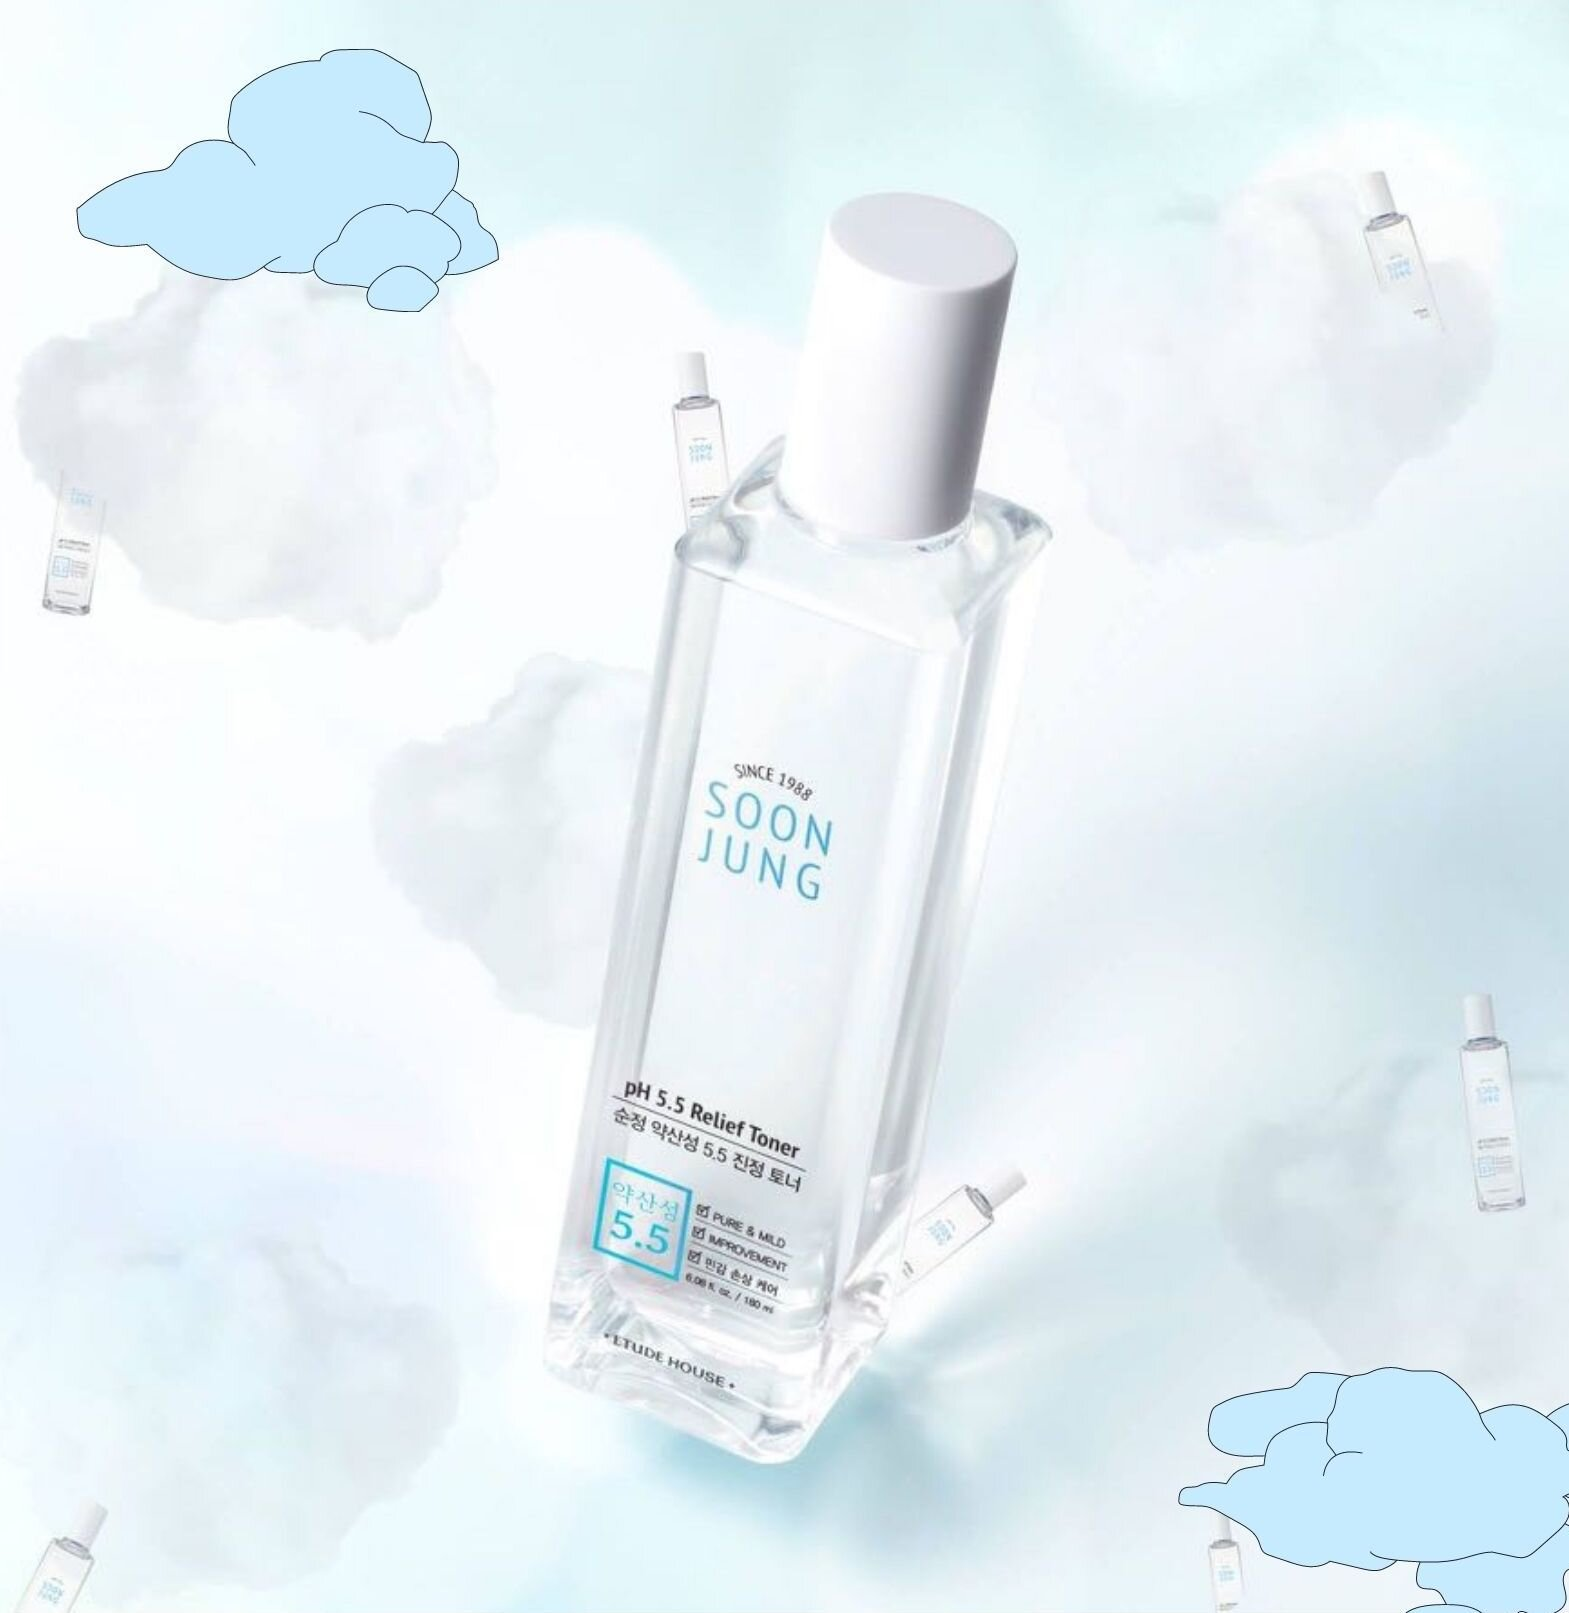 [REVIEW] Etude House Soon Jung pH 5.5 Relief Toner (Before and After)